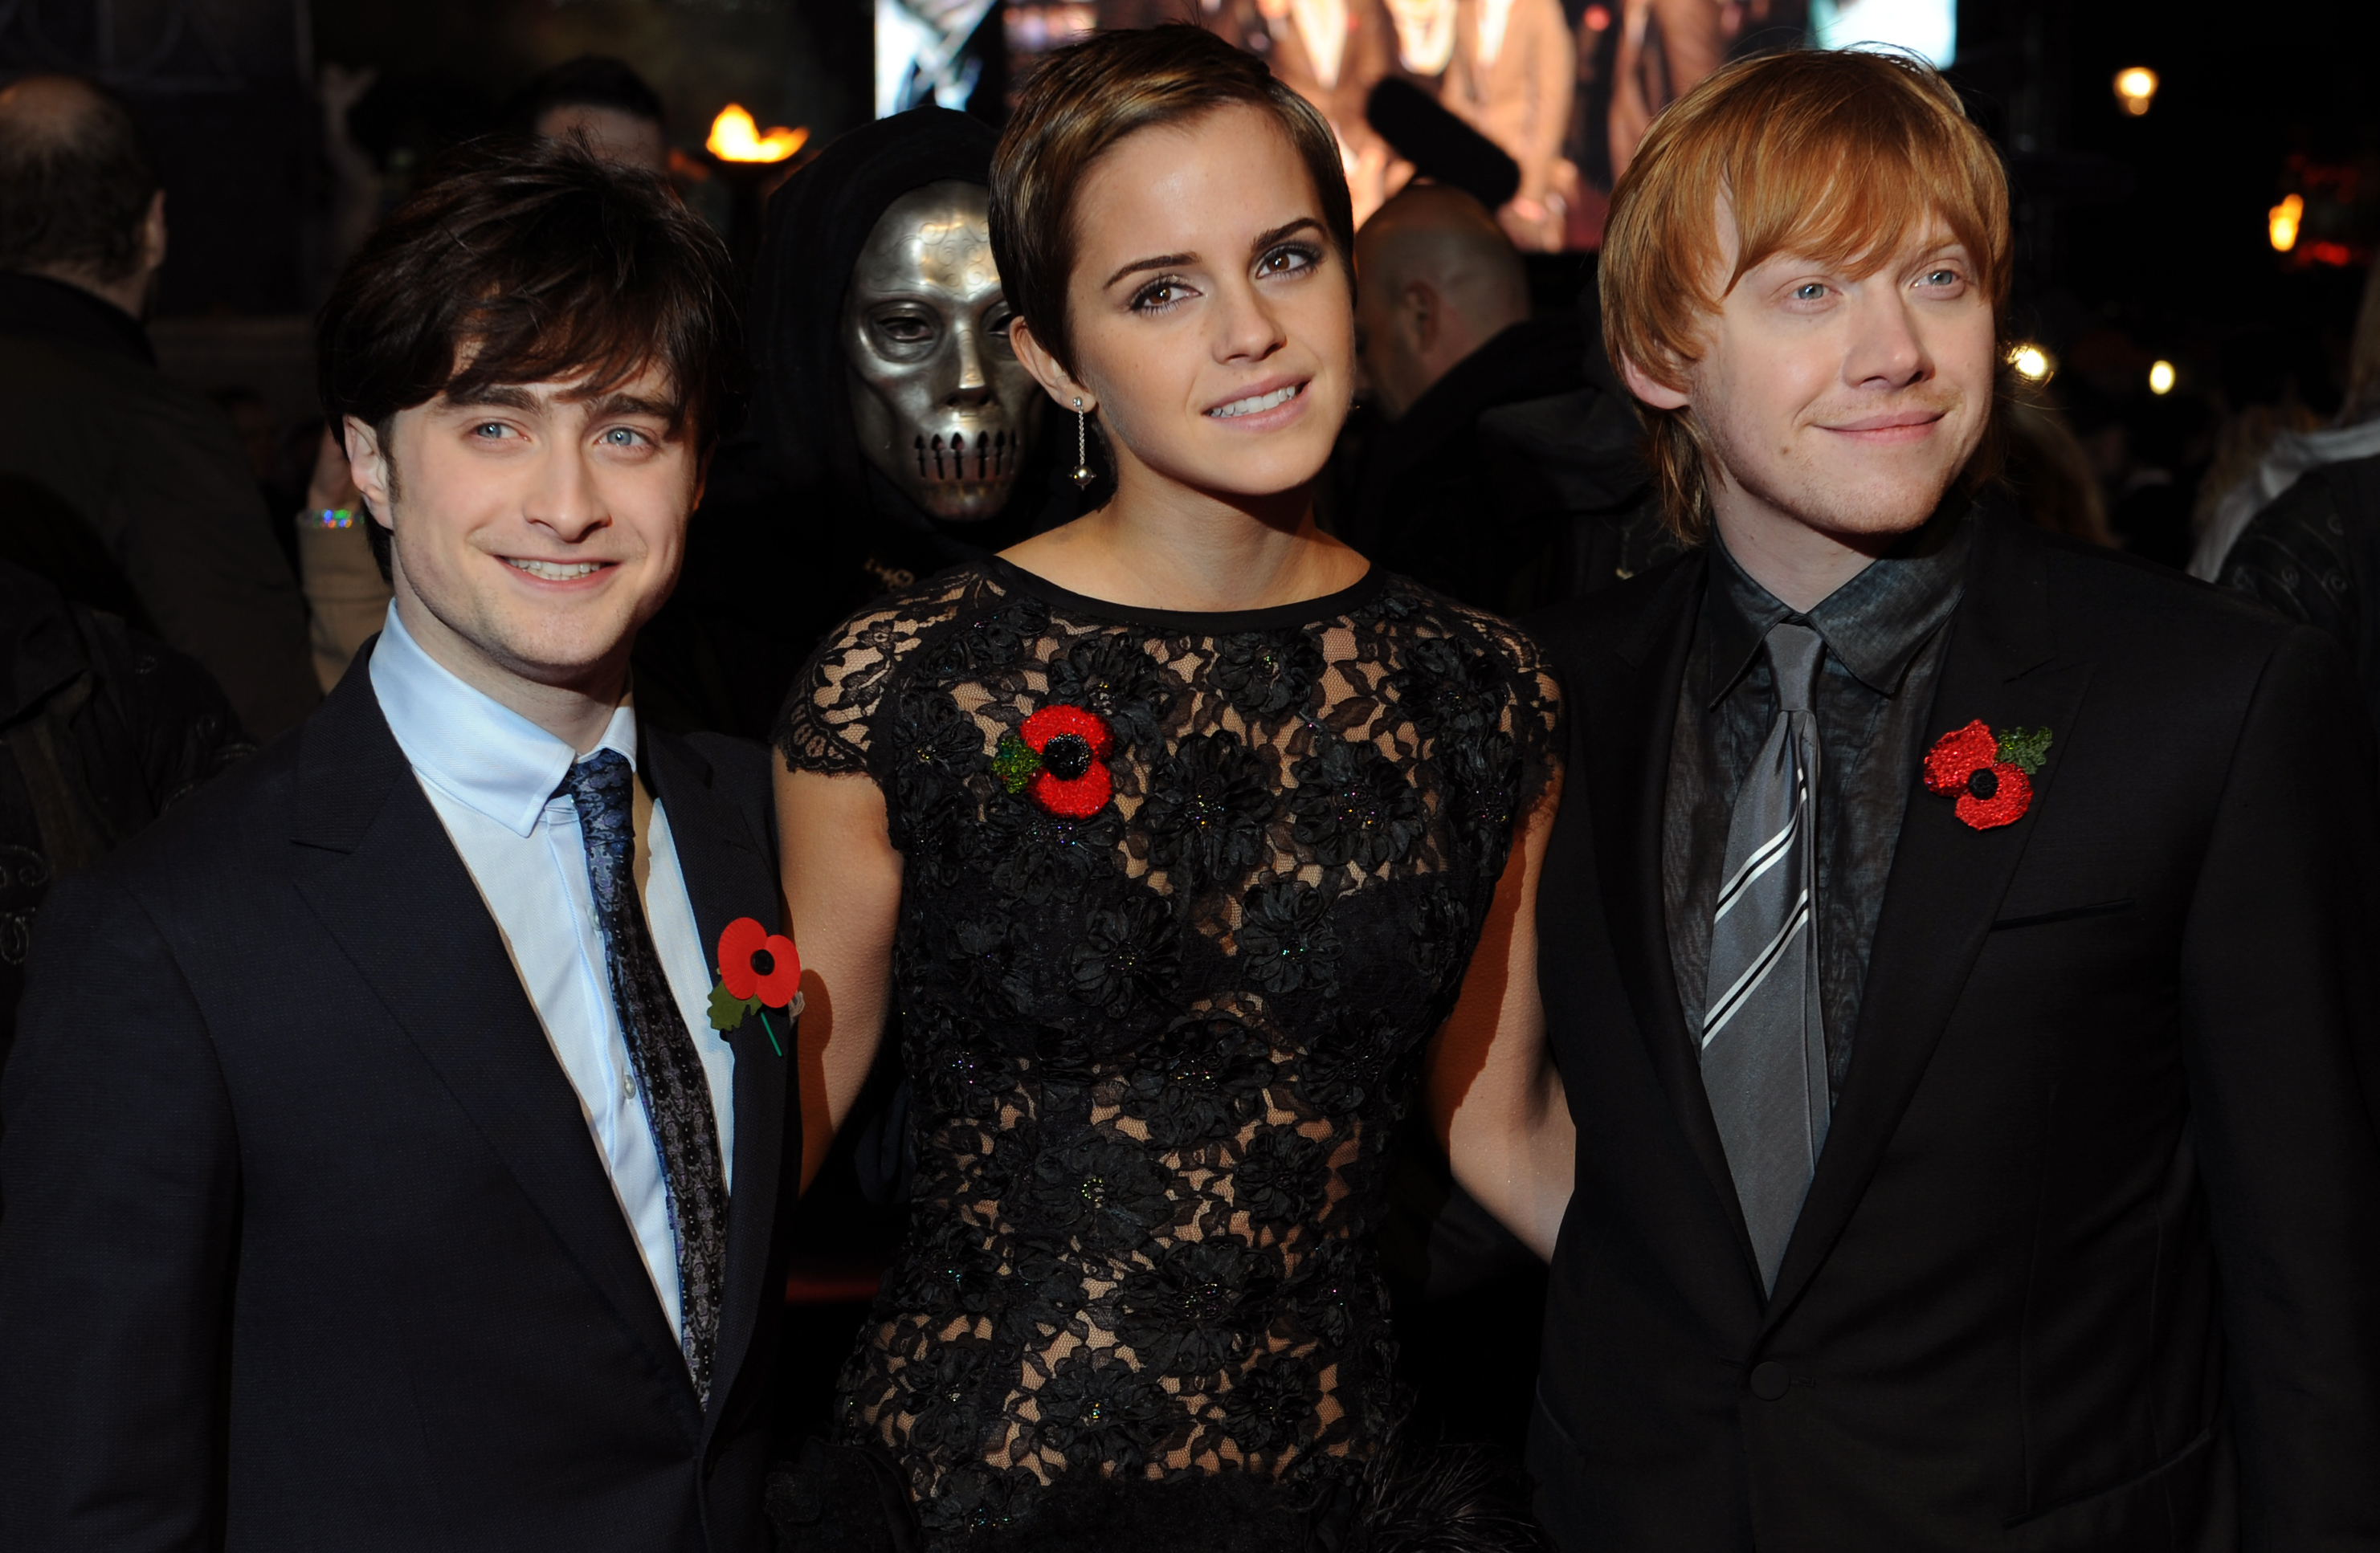 Daniel Radcliffe (L), Emma Watson, (C) and Rupert Grint pose for photographers as they arrive to attend the World Premiere of 'Harry Potter And The Deathly Hallows: Part One' in Leicester Square, central London on November 11, 2010.